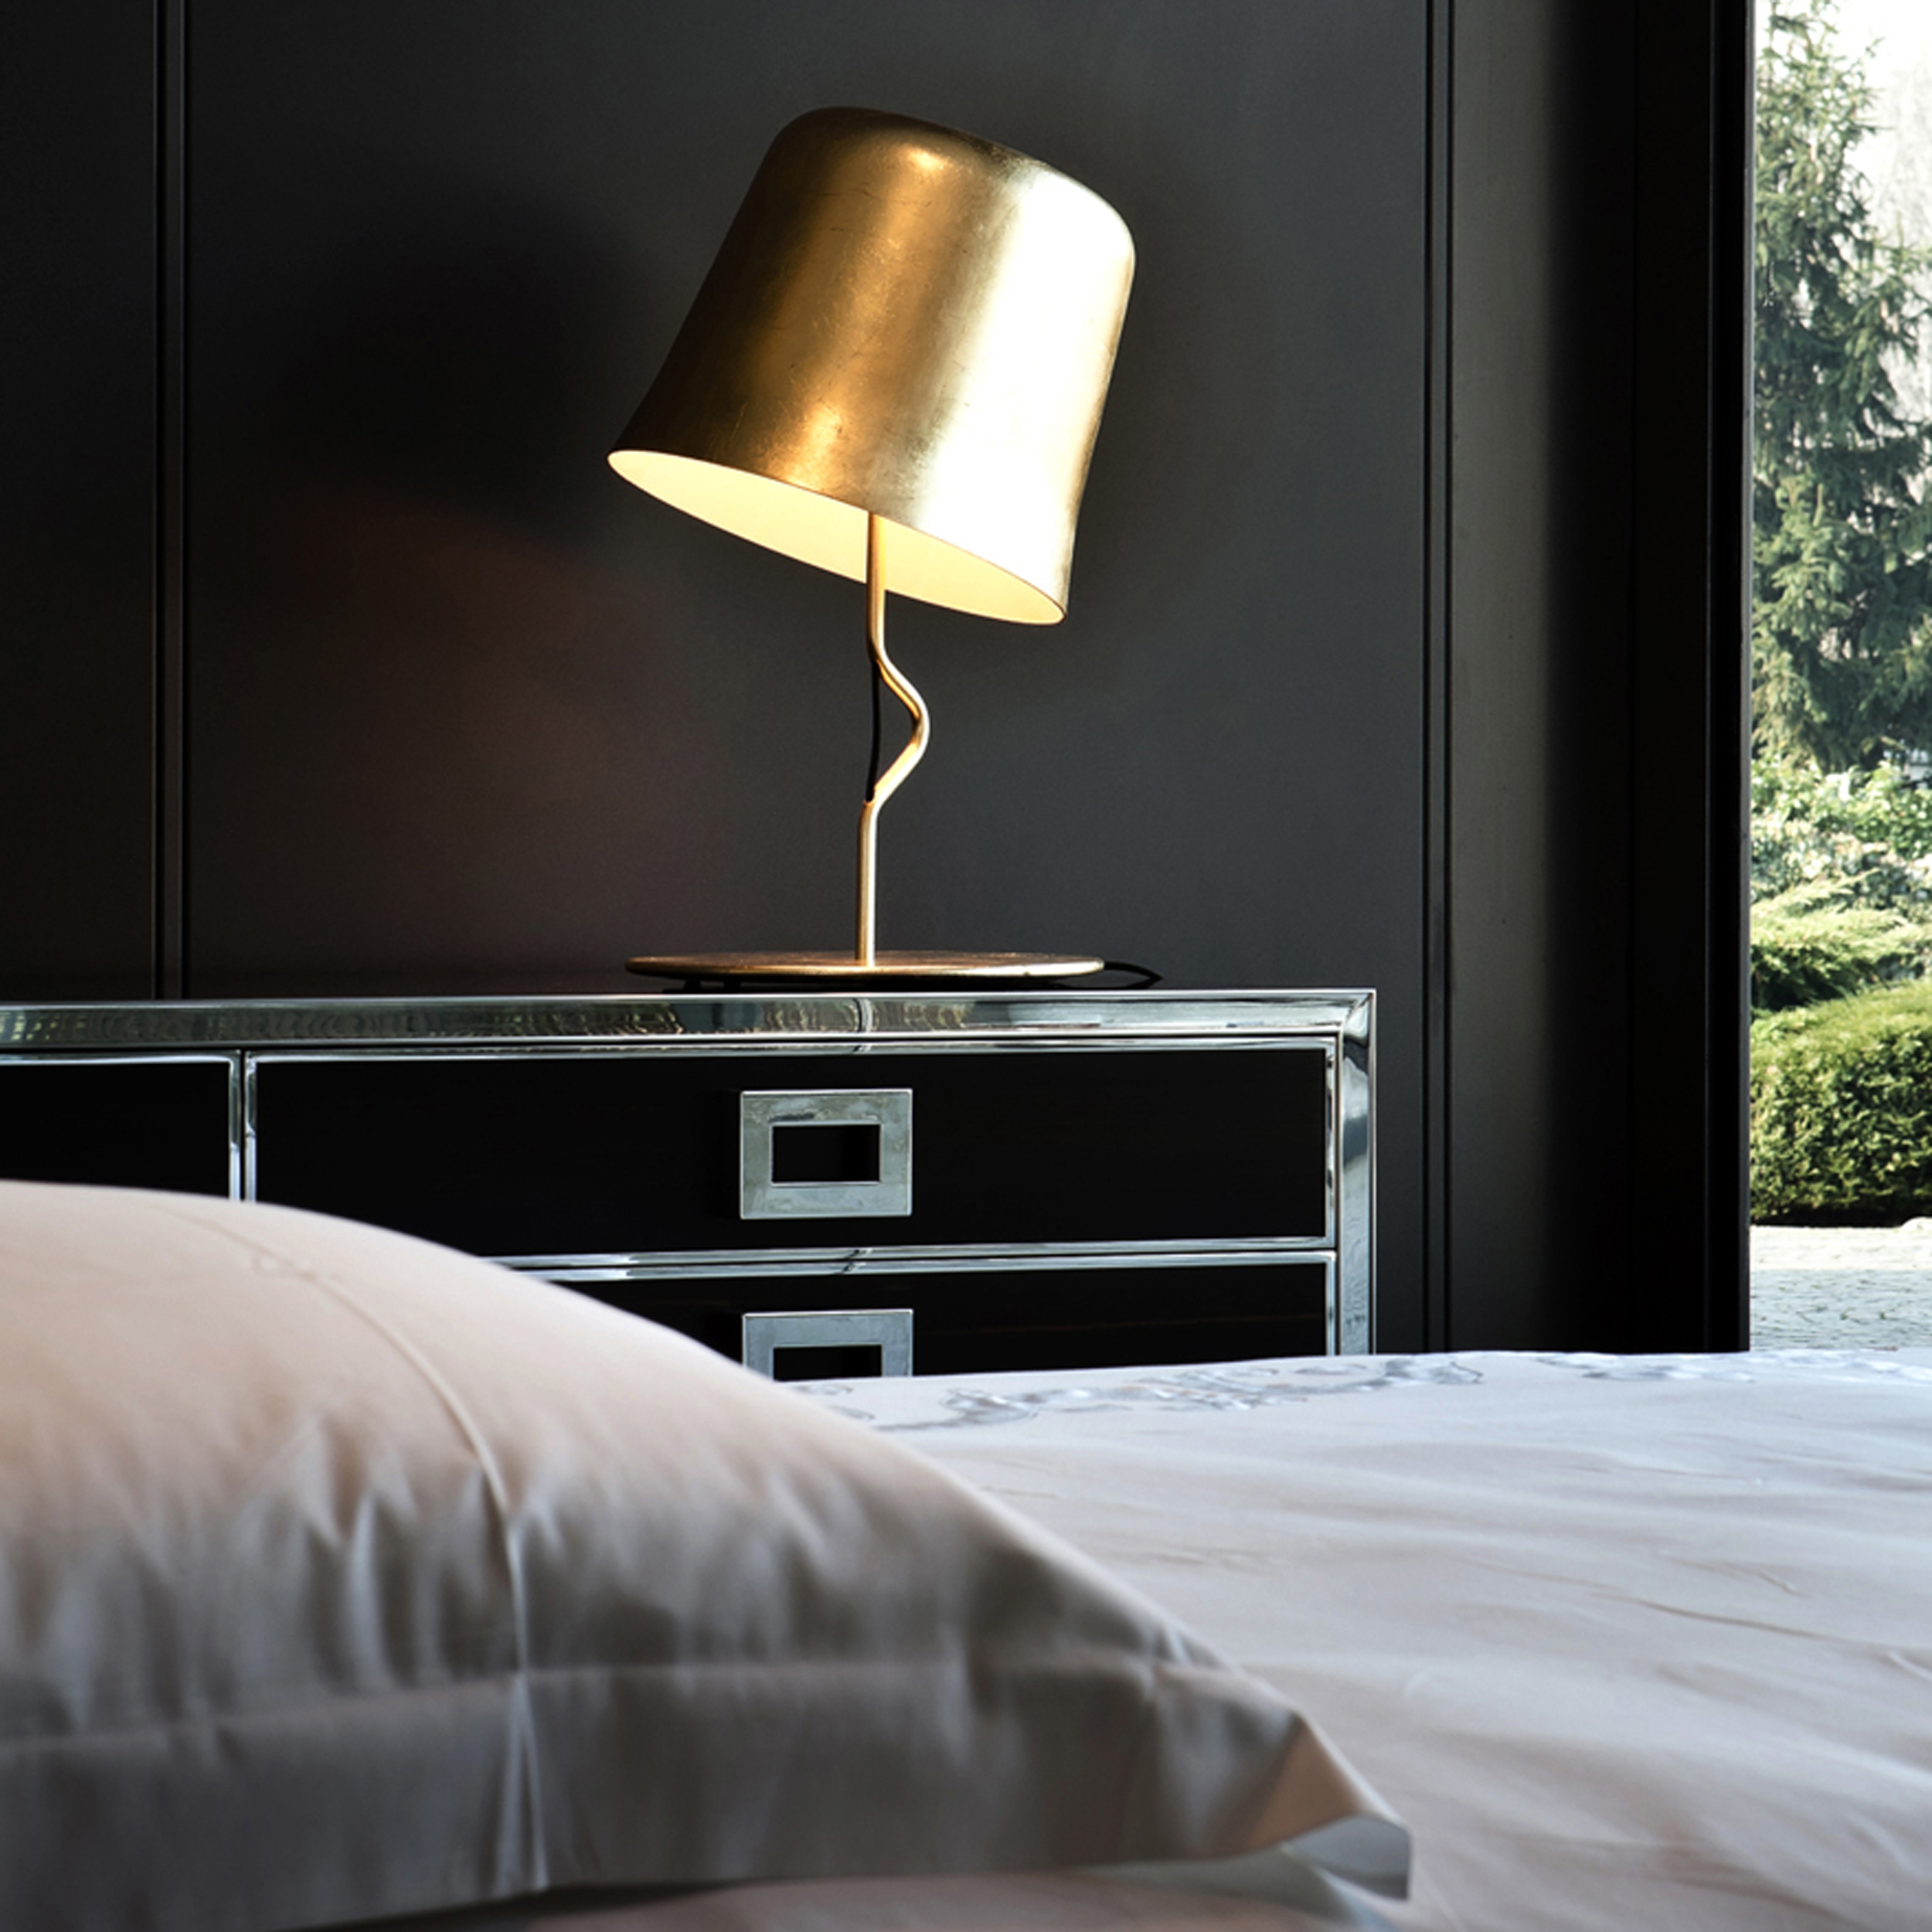 Contardi Agata Ap Wall Light Gold Leaf B